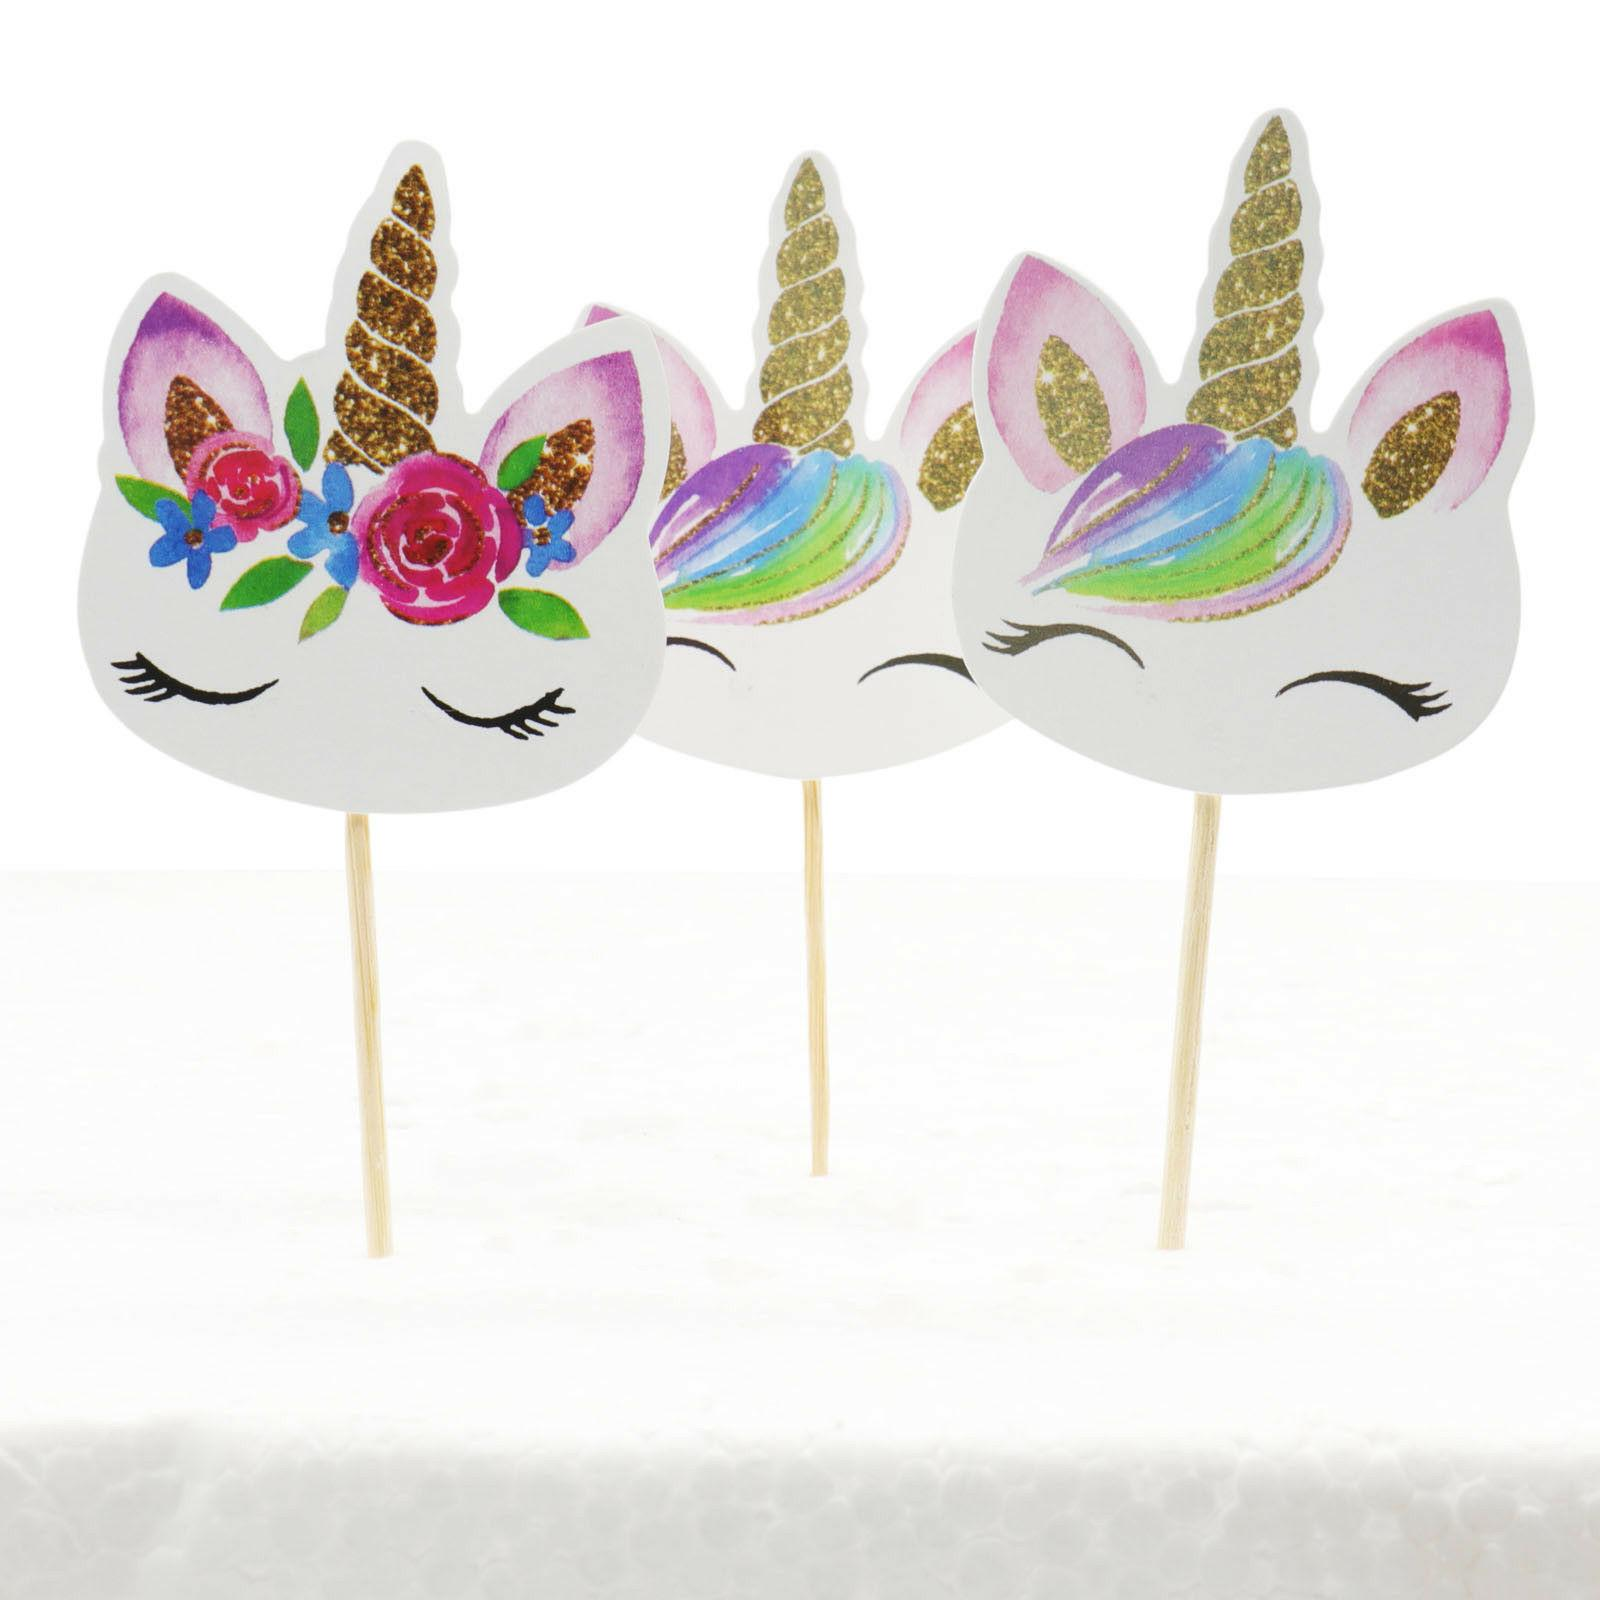 24pcs Unicorn Party Cake Toppers Edible Wafer Paper Cake Top